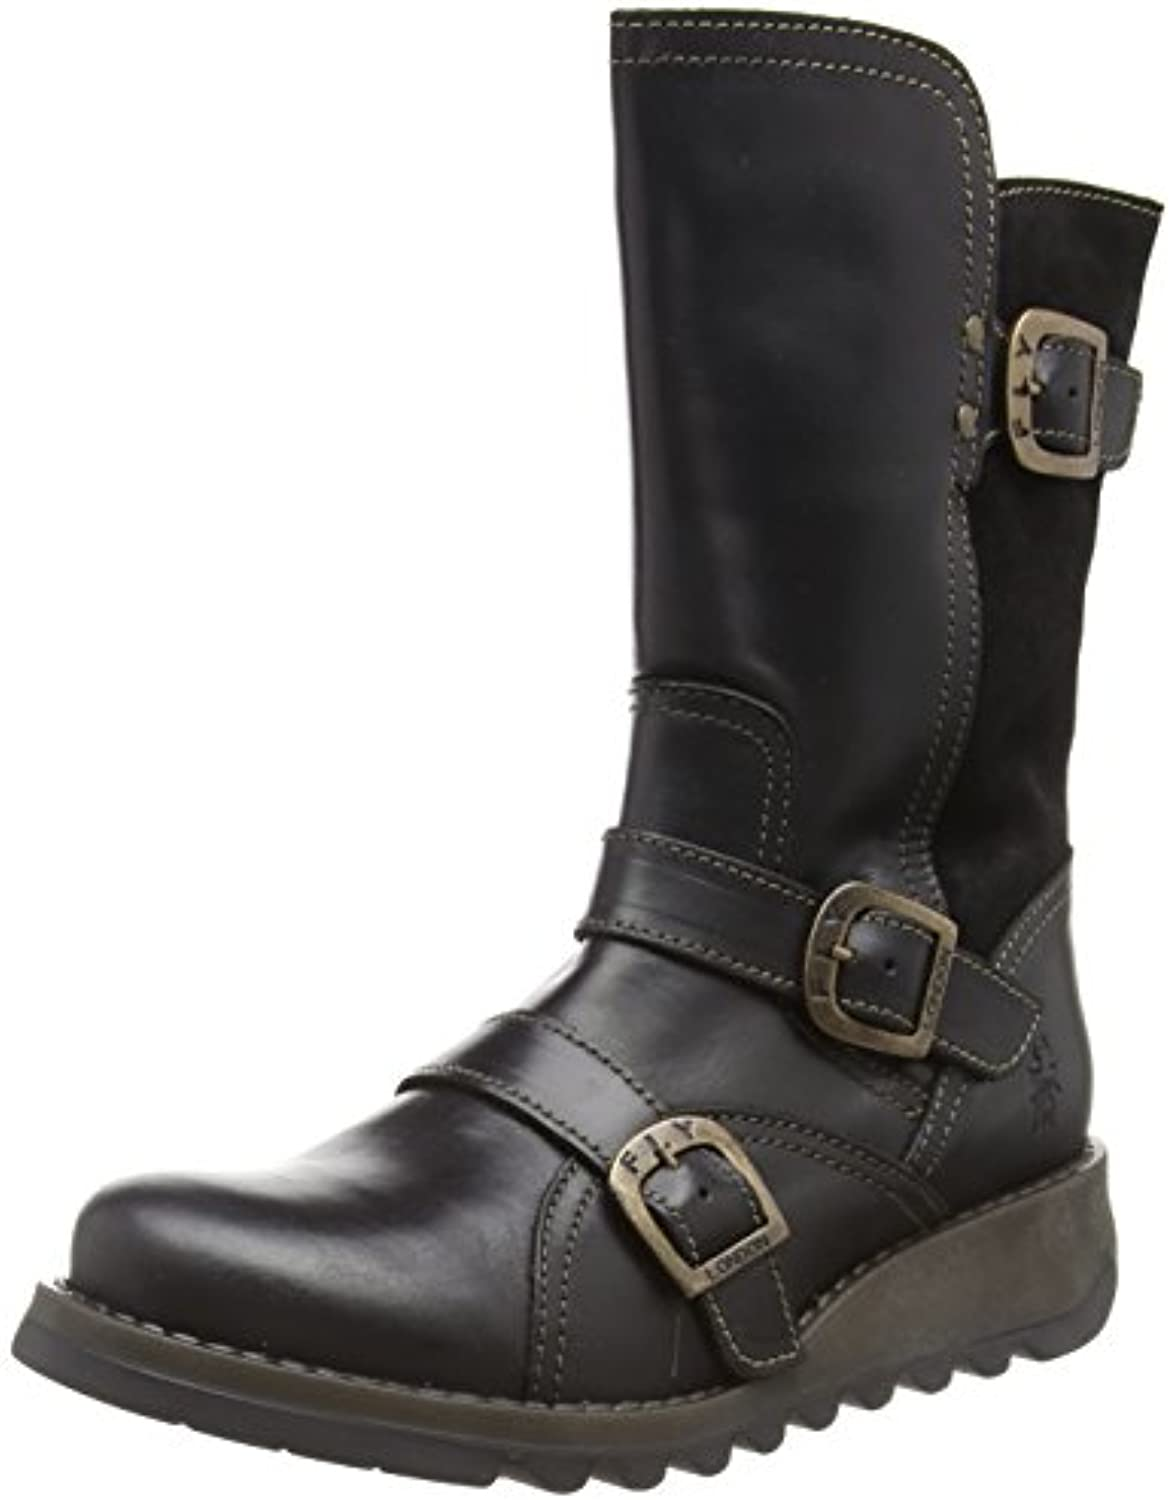 4c917abad76f Fly Fly Fly London Women rsquo s Selk350fly Biker Boots B07CHR3ZLB Parent  febed9